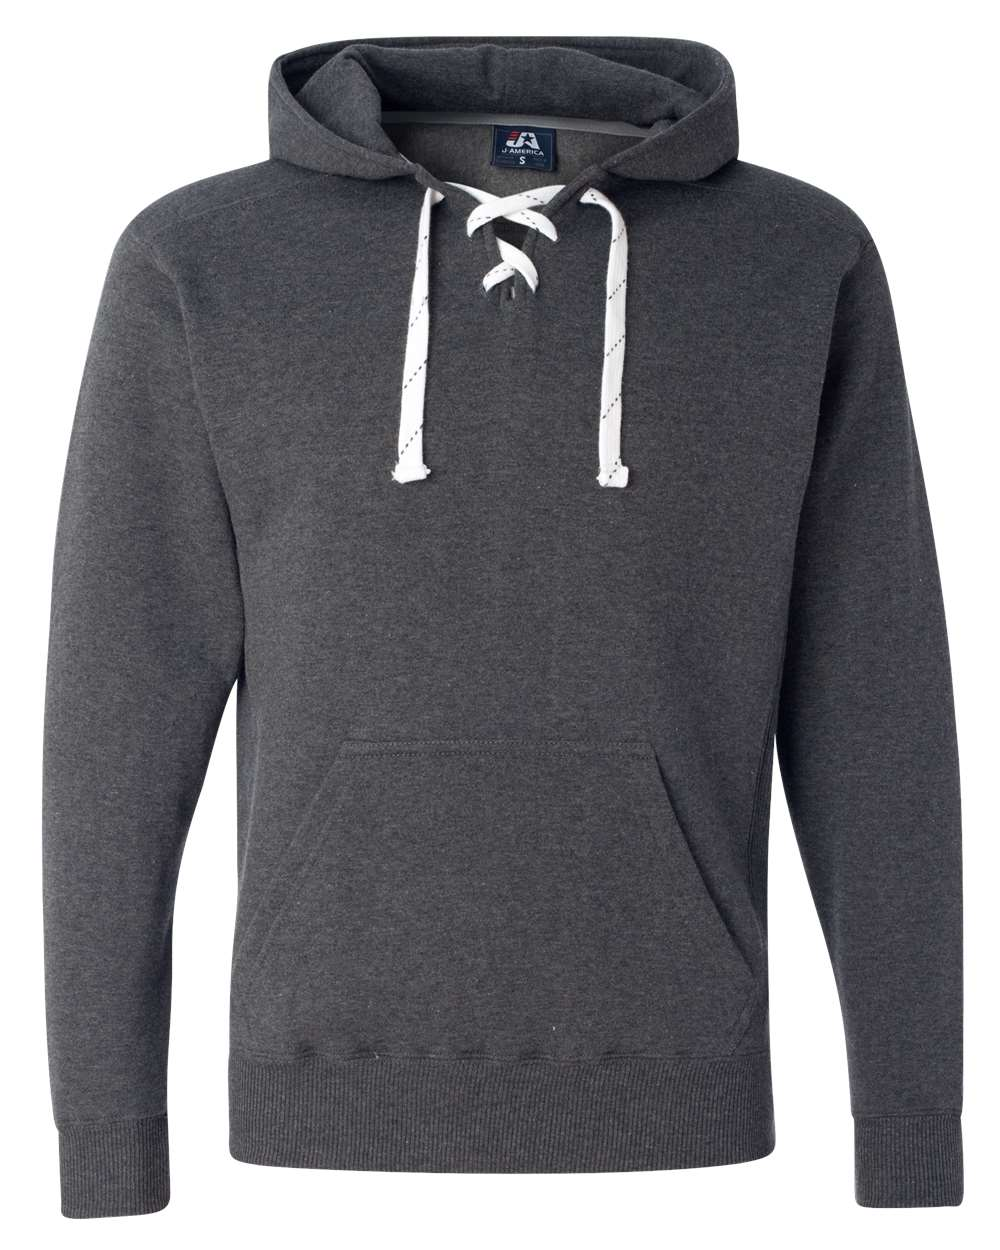 J-America-Mens-Blank-Sport-Lace-Hooded-Sweatshirt-8830-up-to-3XL thumbnail 9